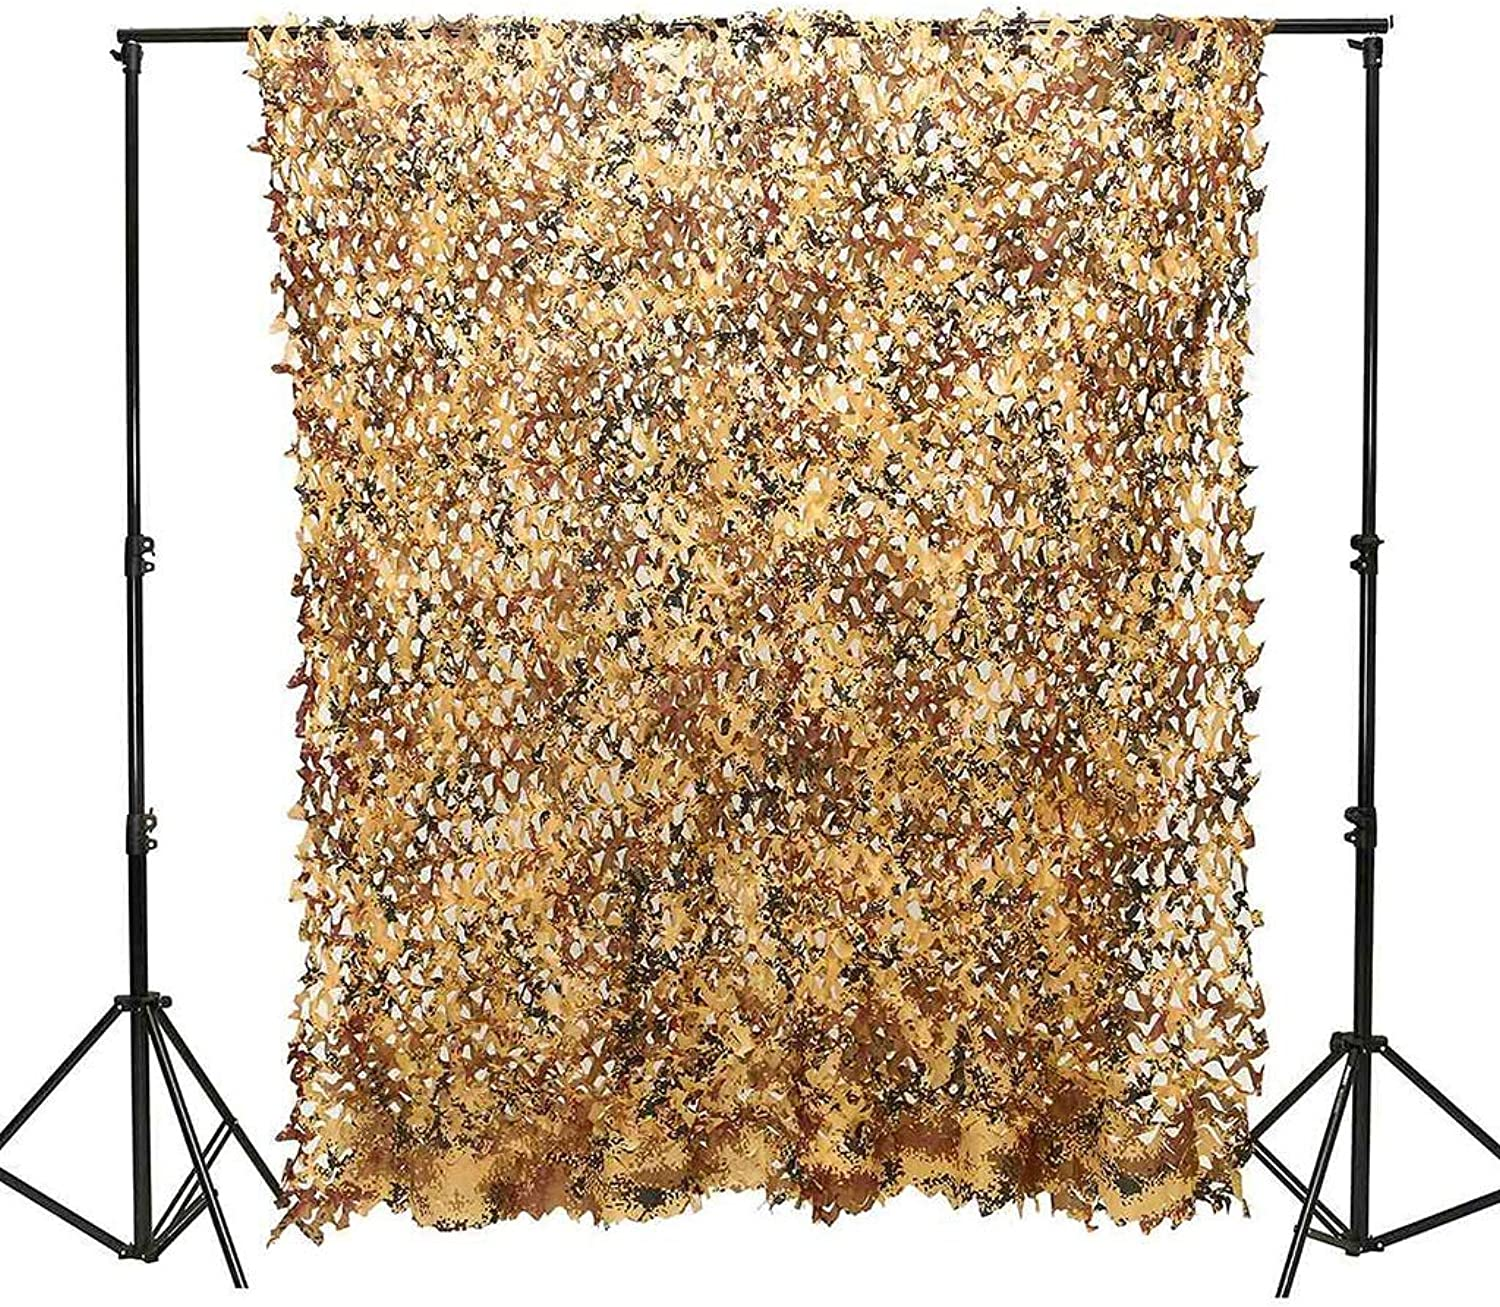 Camouflage Net Camo Netting Shading net for Photography Hunting Camping Military Car Cover (Size   3x3m)